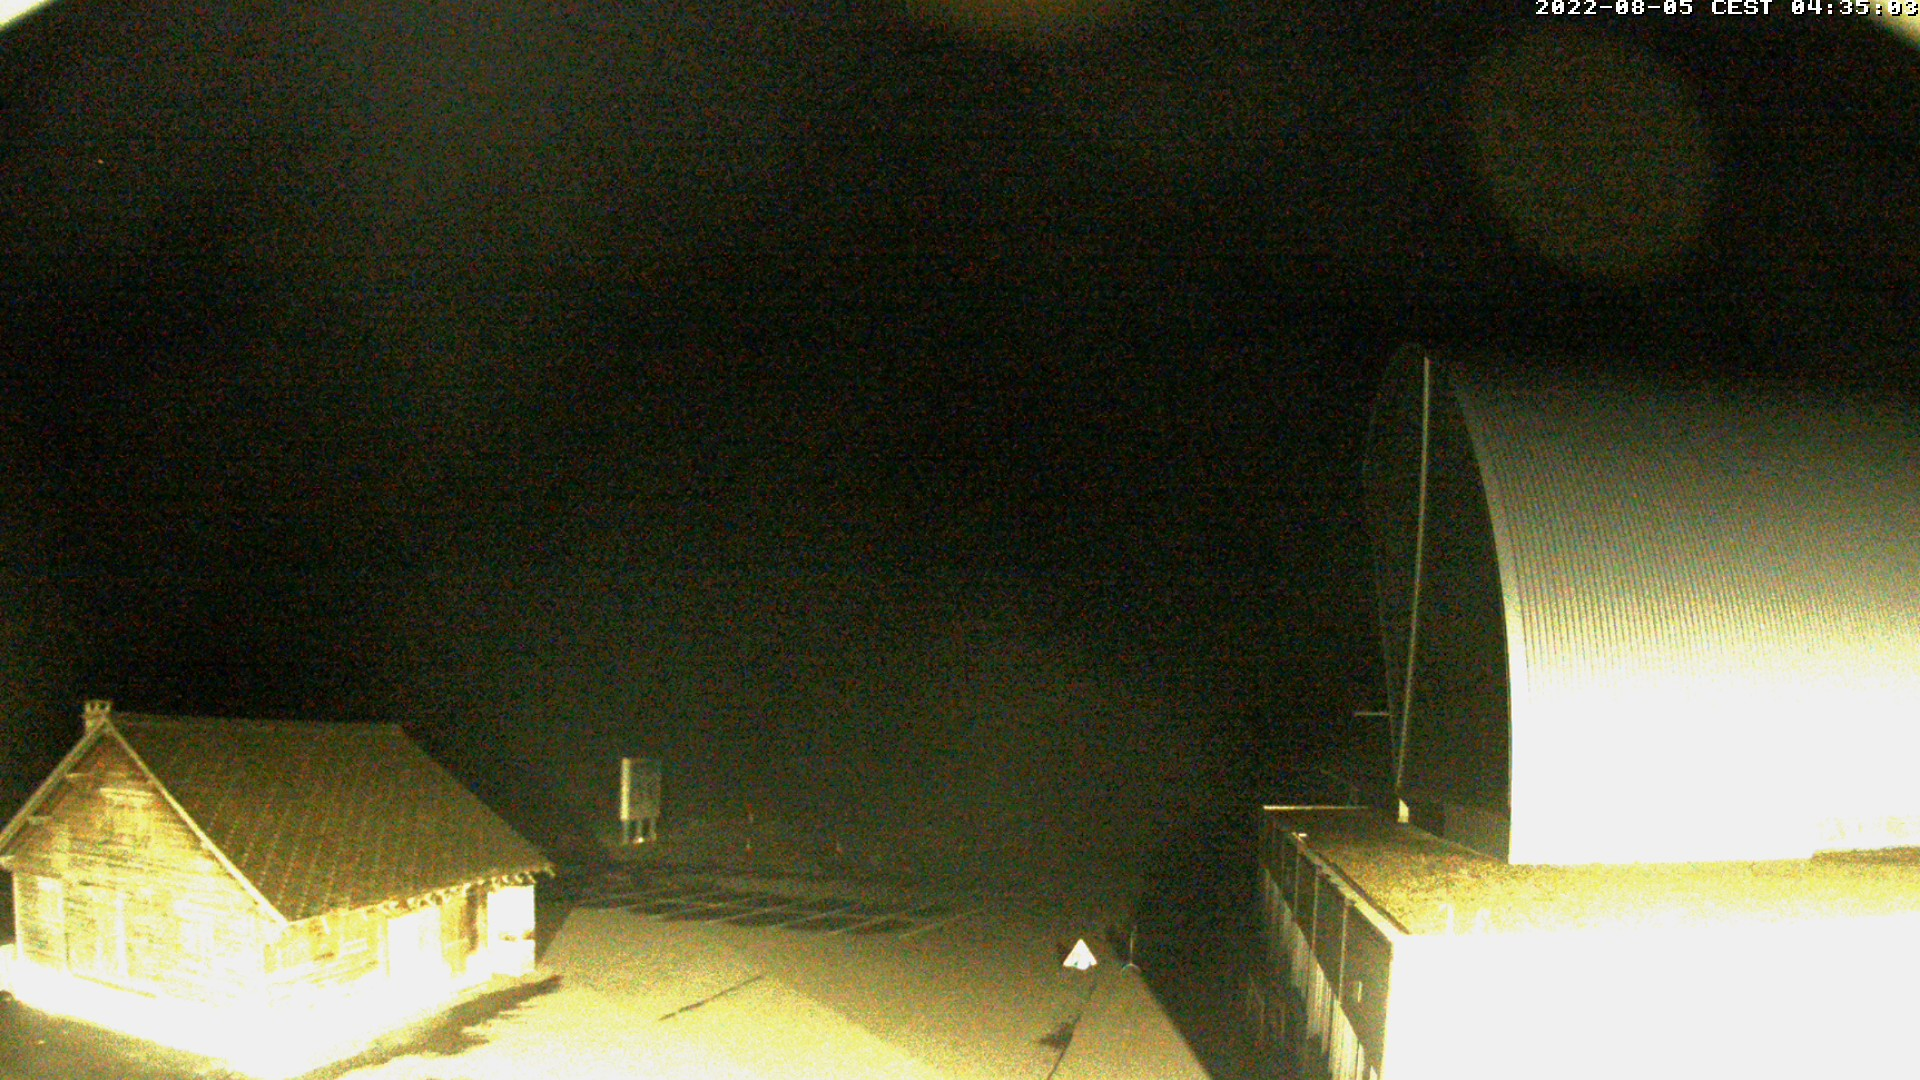 Webcam Col du Pillon - Alt. 1546 m